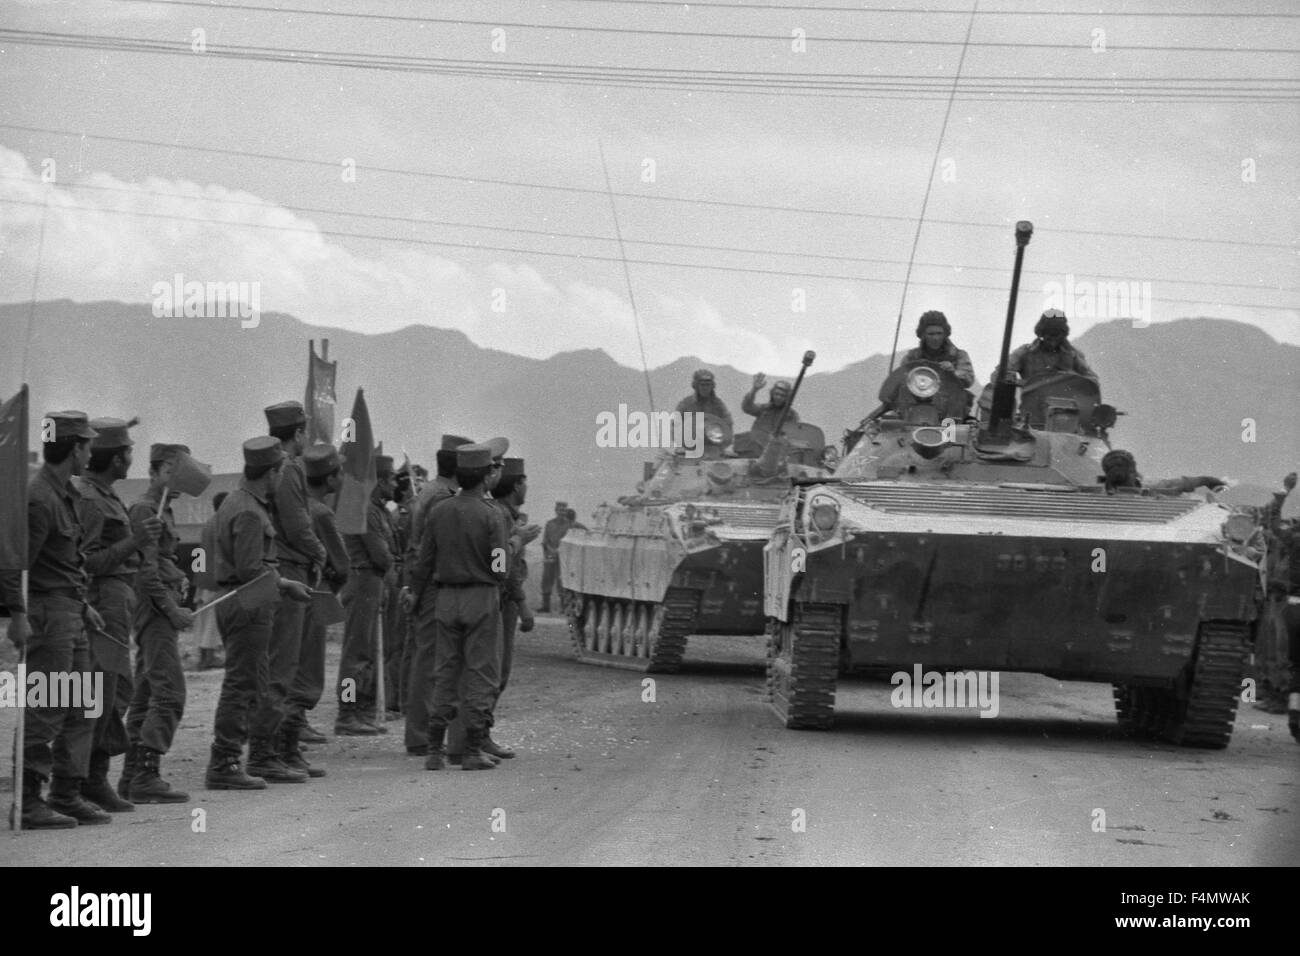 Soviet Afghanistan war - Page 6 Afghanistan-kabul-the-soviet-and-afghan-soldiers-F4MWAK